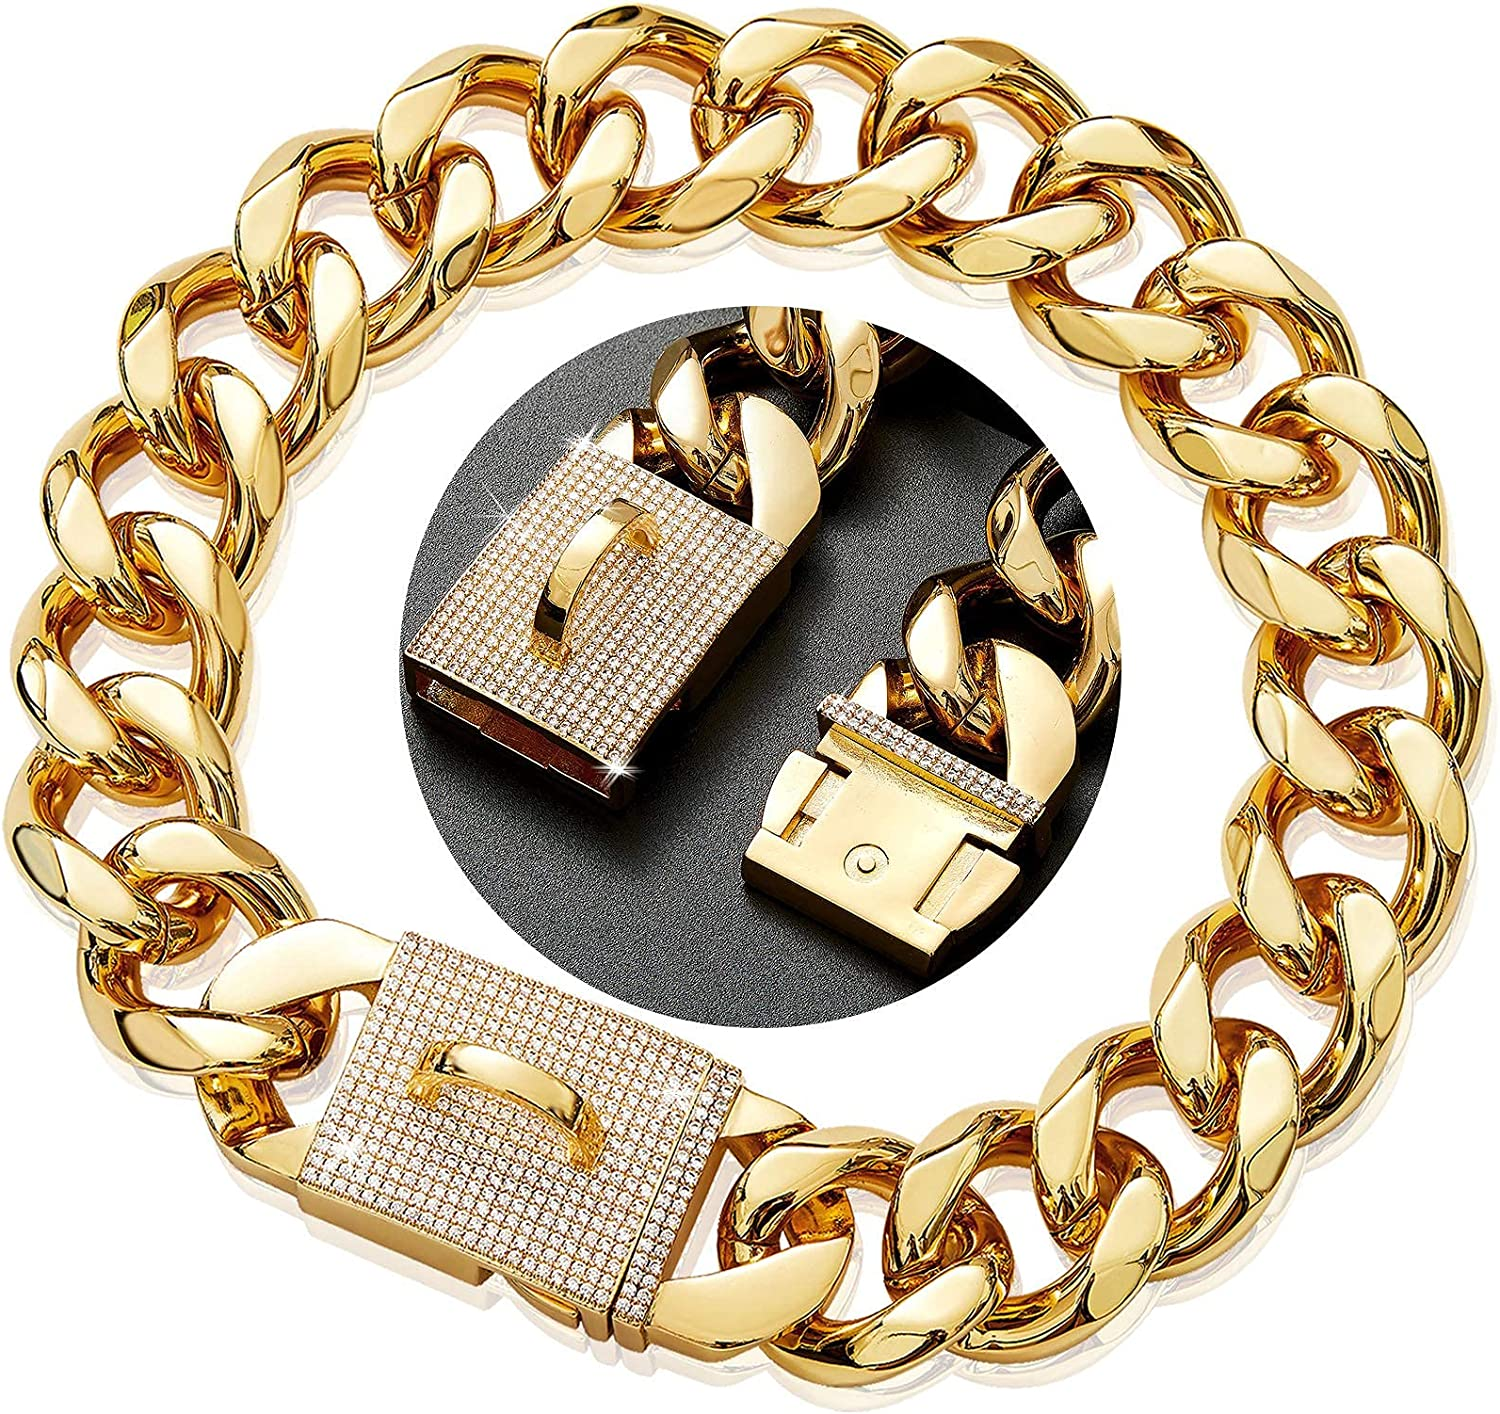 18K Gold Dog Collar Chain Necklace Strong with Diamond Buckle Online limited product S Popular